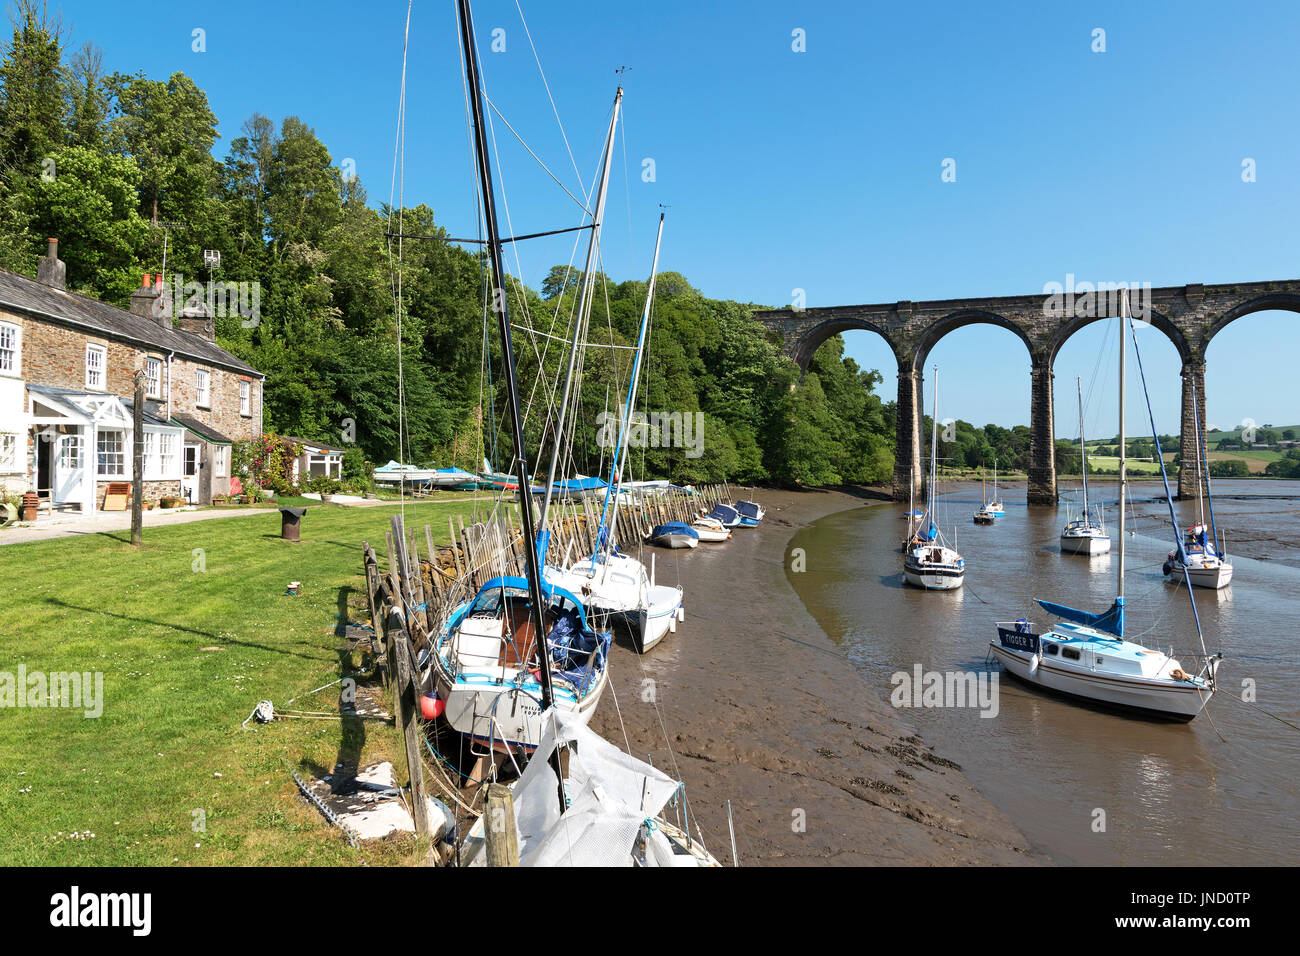 the quay on the river tiddy at st,germans in cornwall, england, uk. - Stock Image